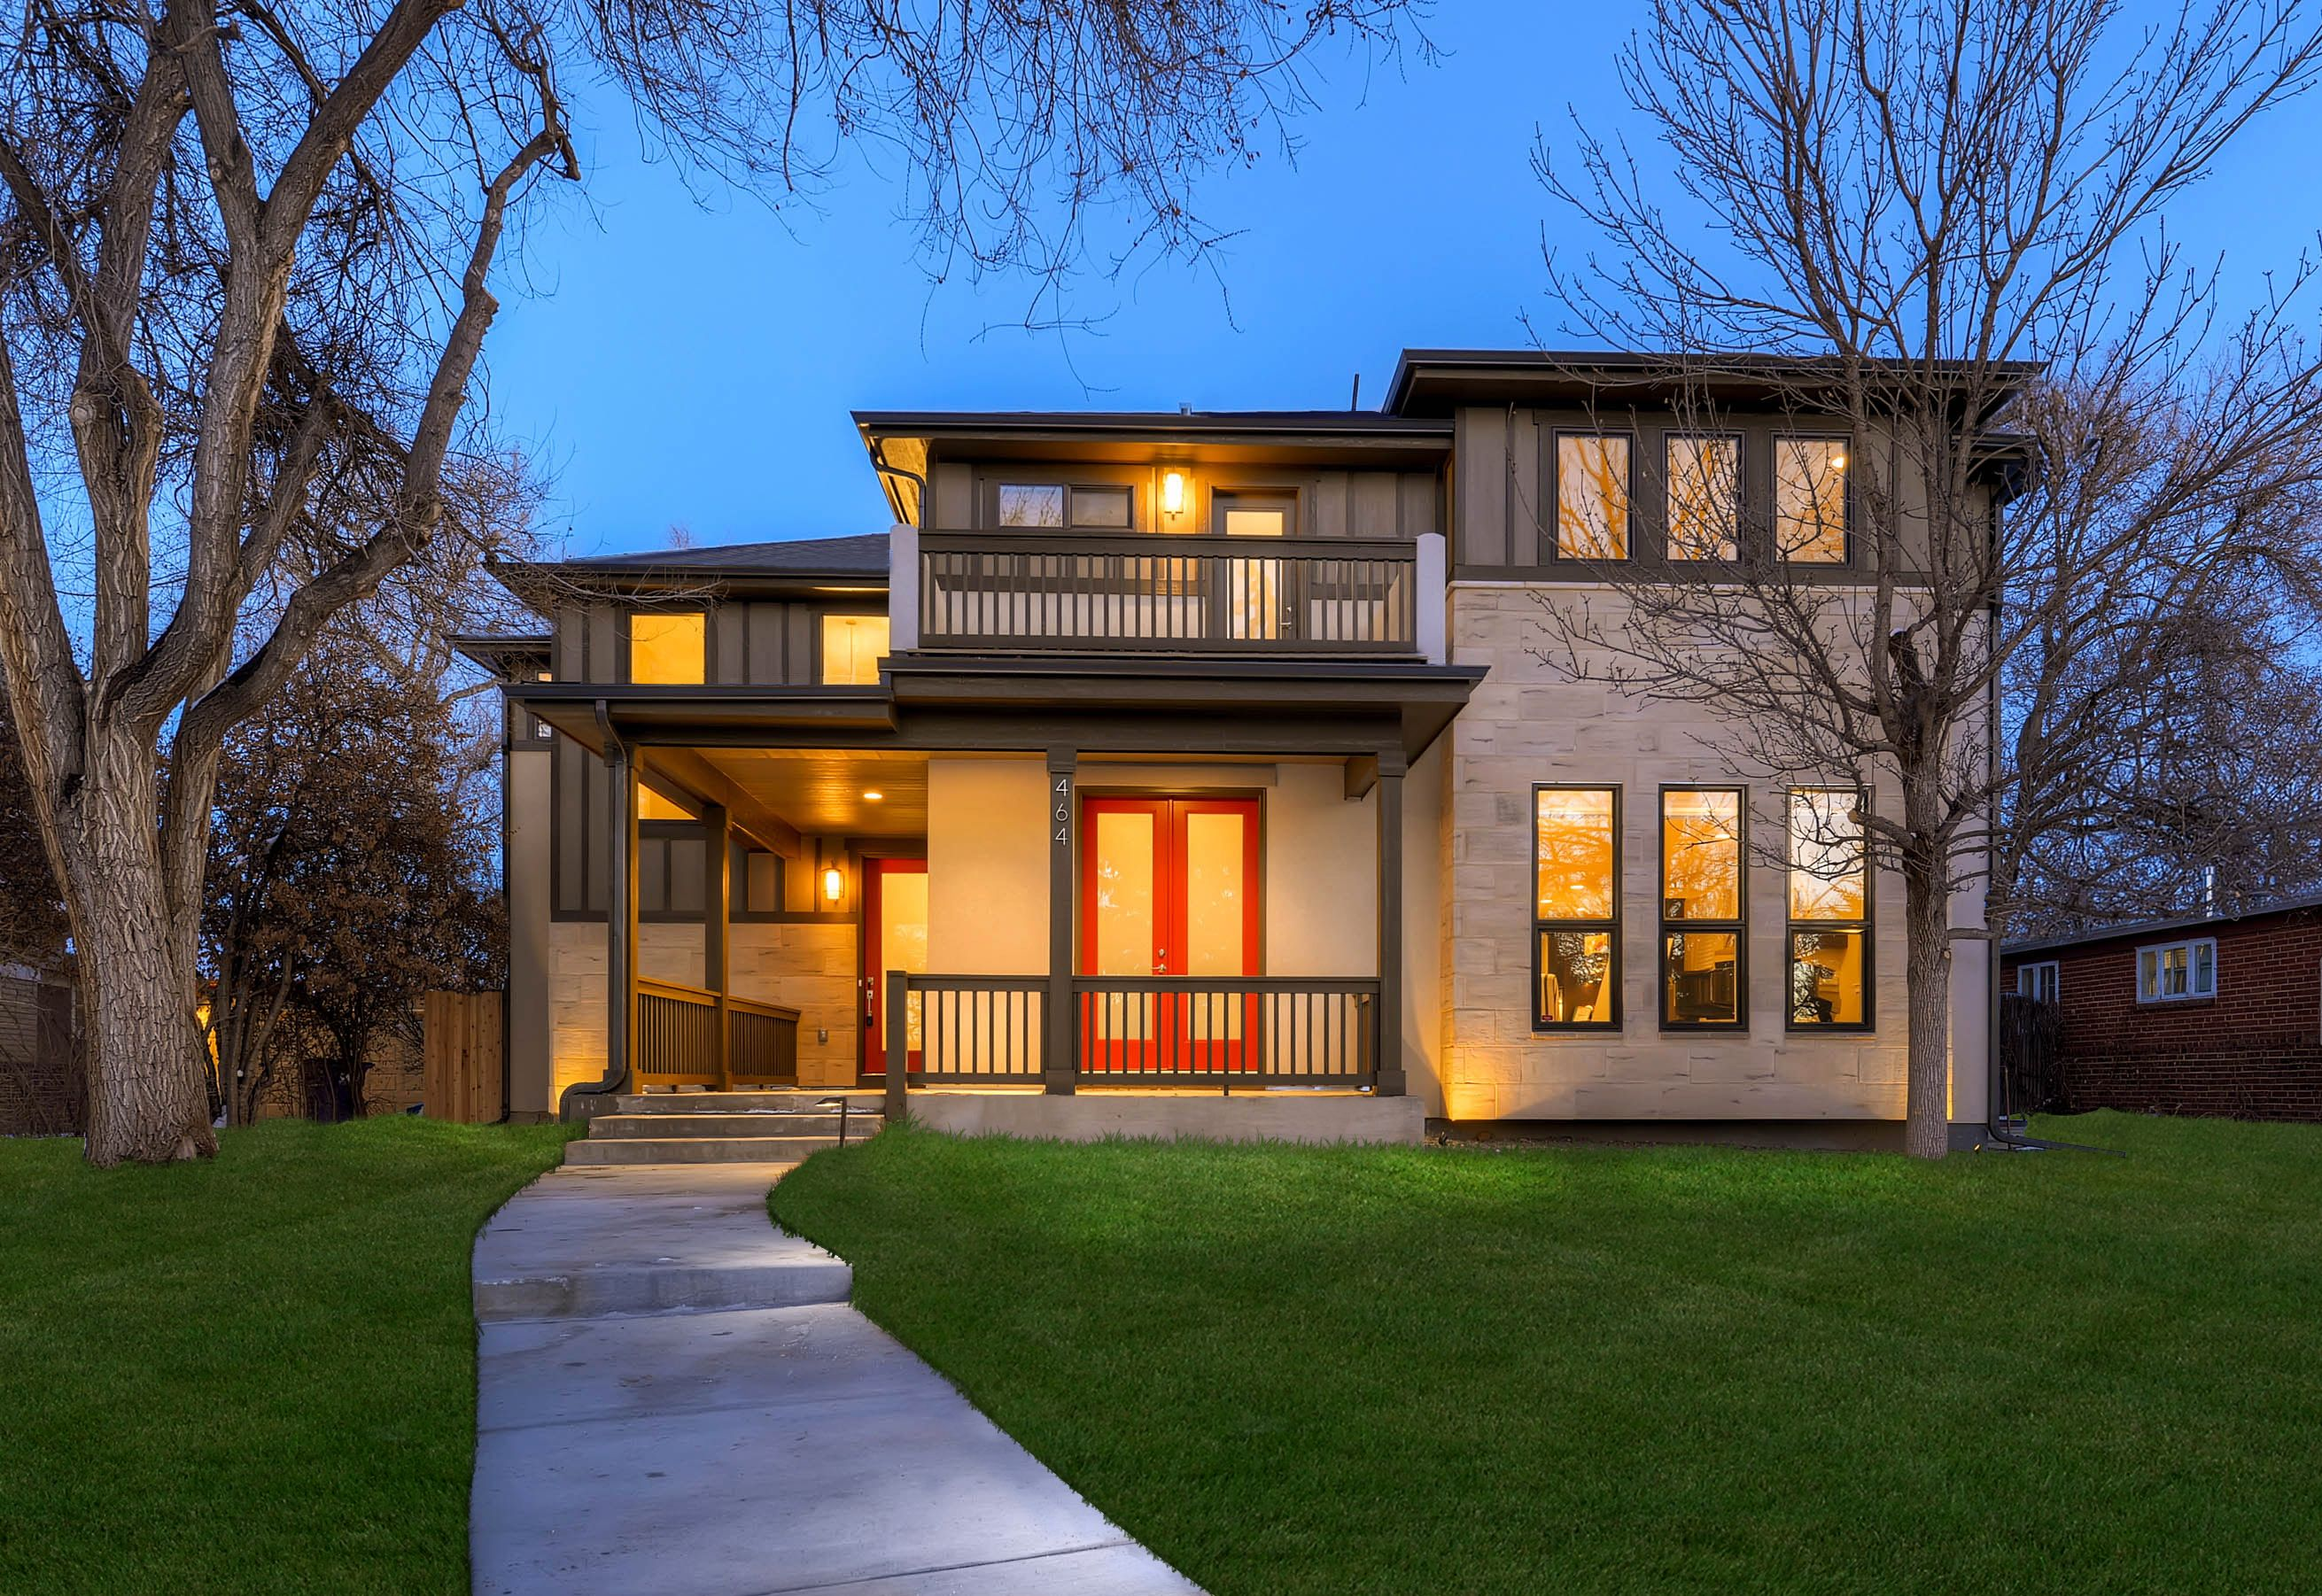 Elegant New Home   Contemporary Denver Bello Custom Home Designed With Red Door  Accent. New Home